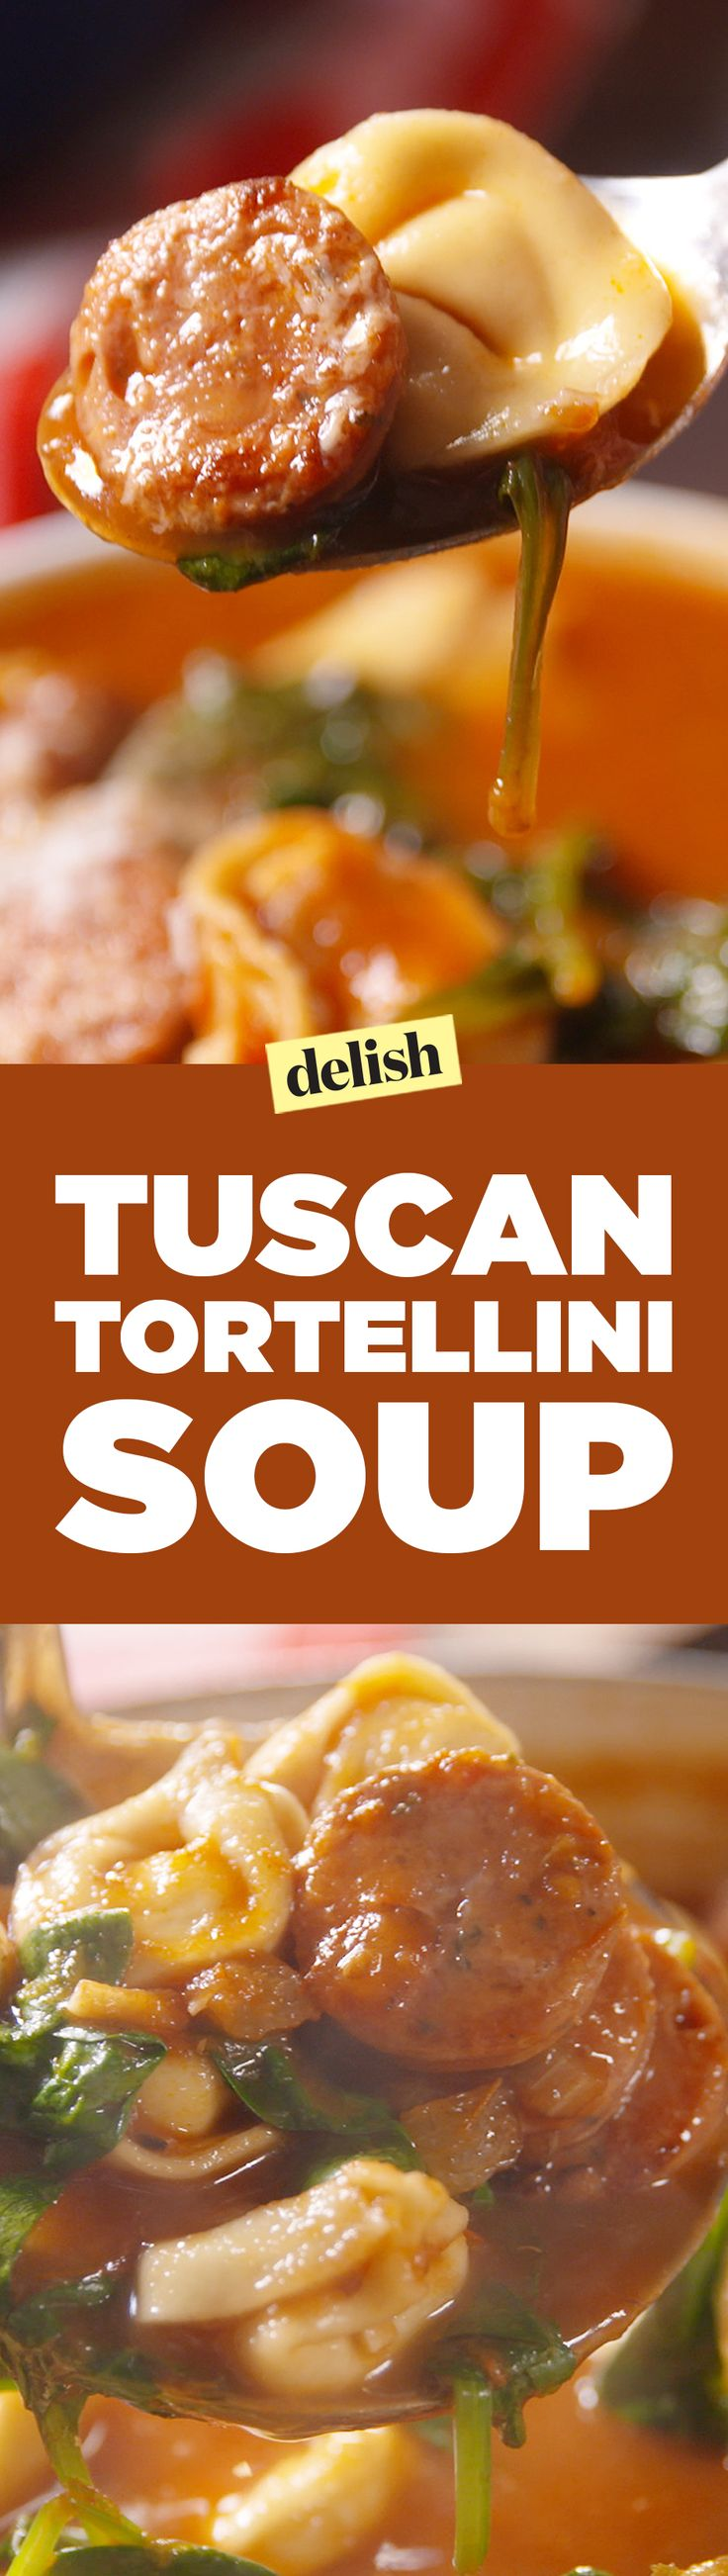 Tuscan Tortellini Soup is the perfect start to soup season. Get the recipe on Delish.com.